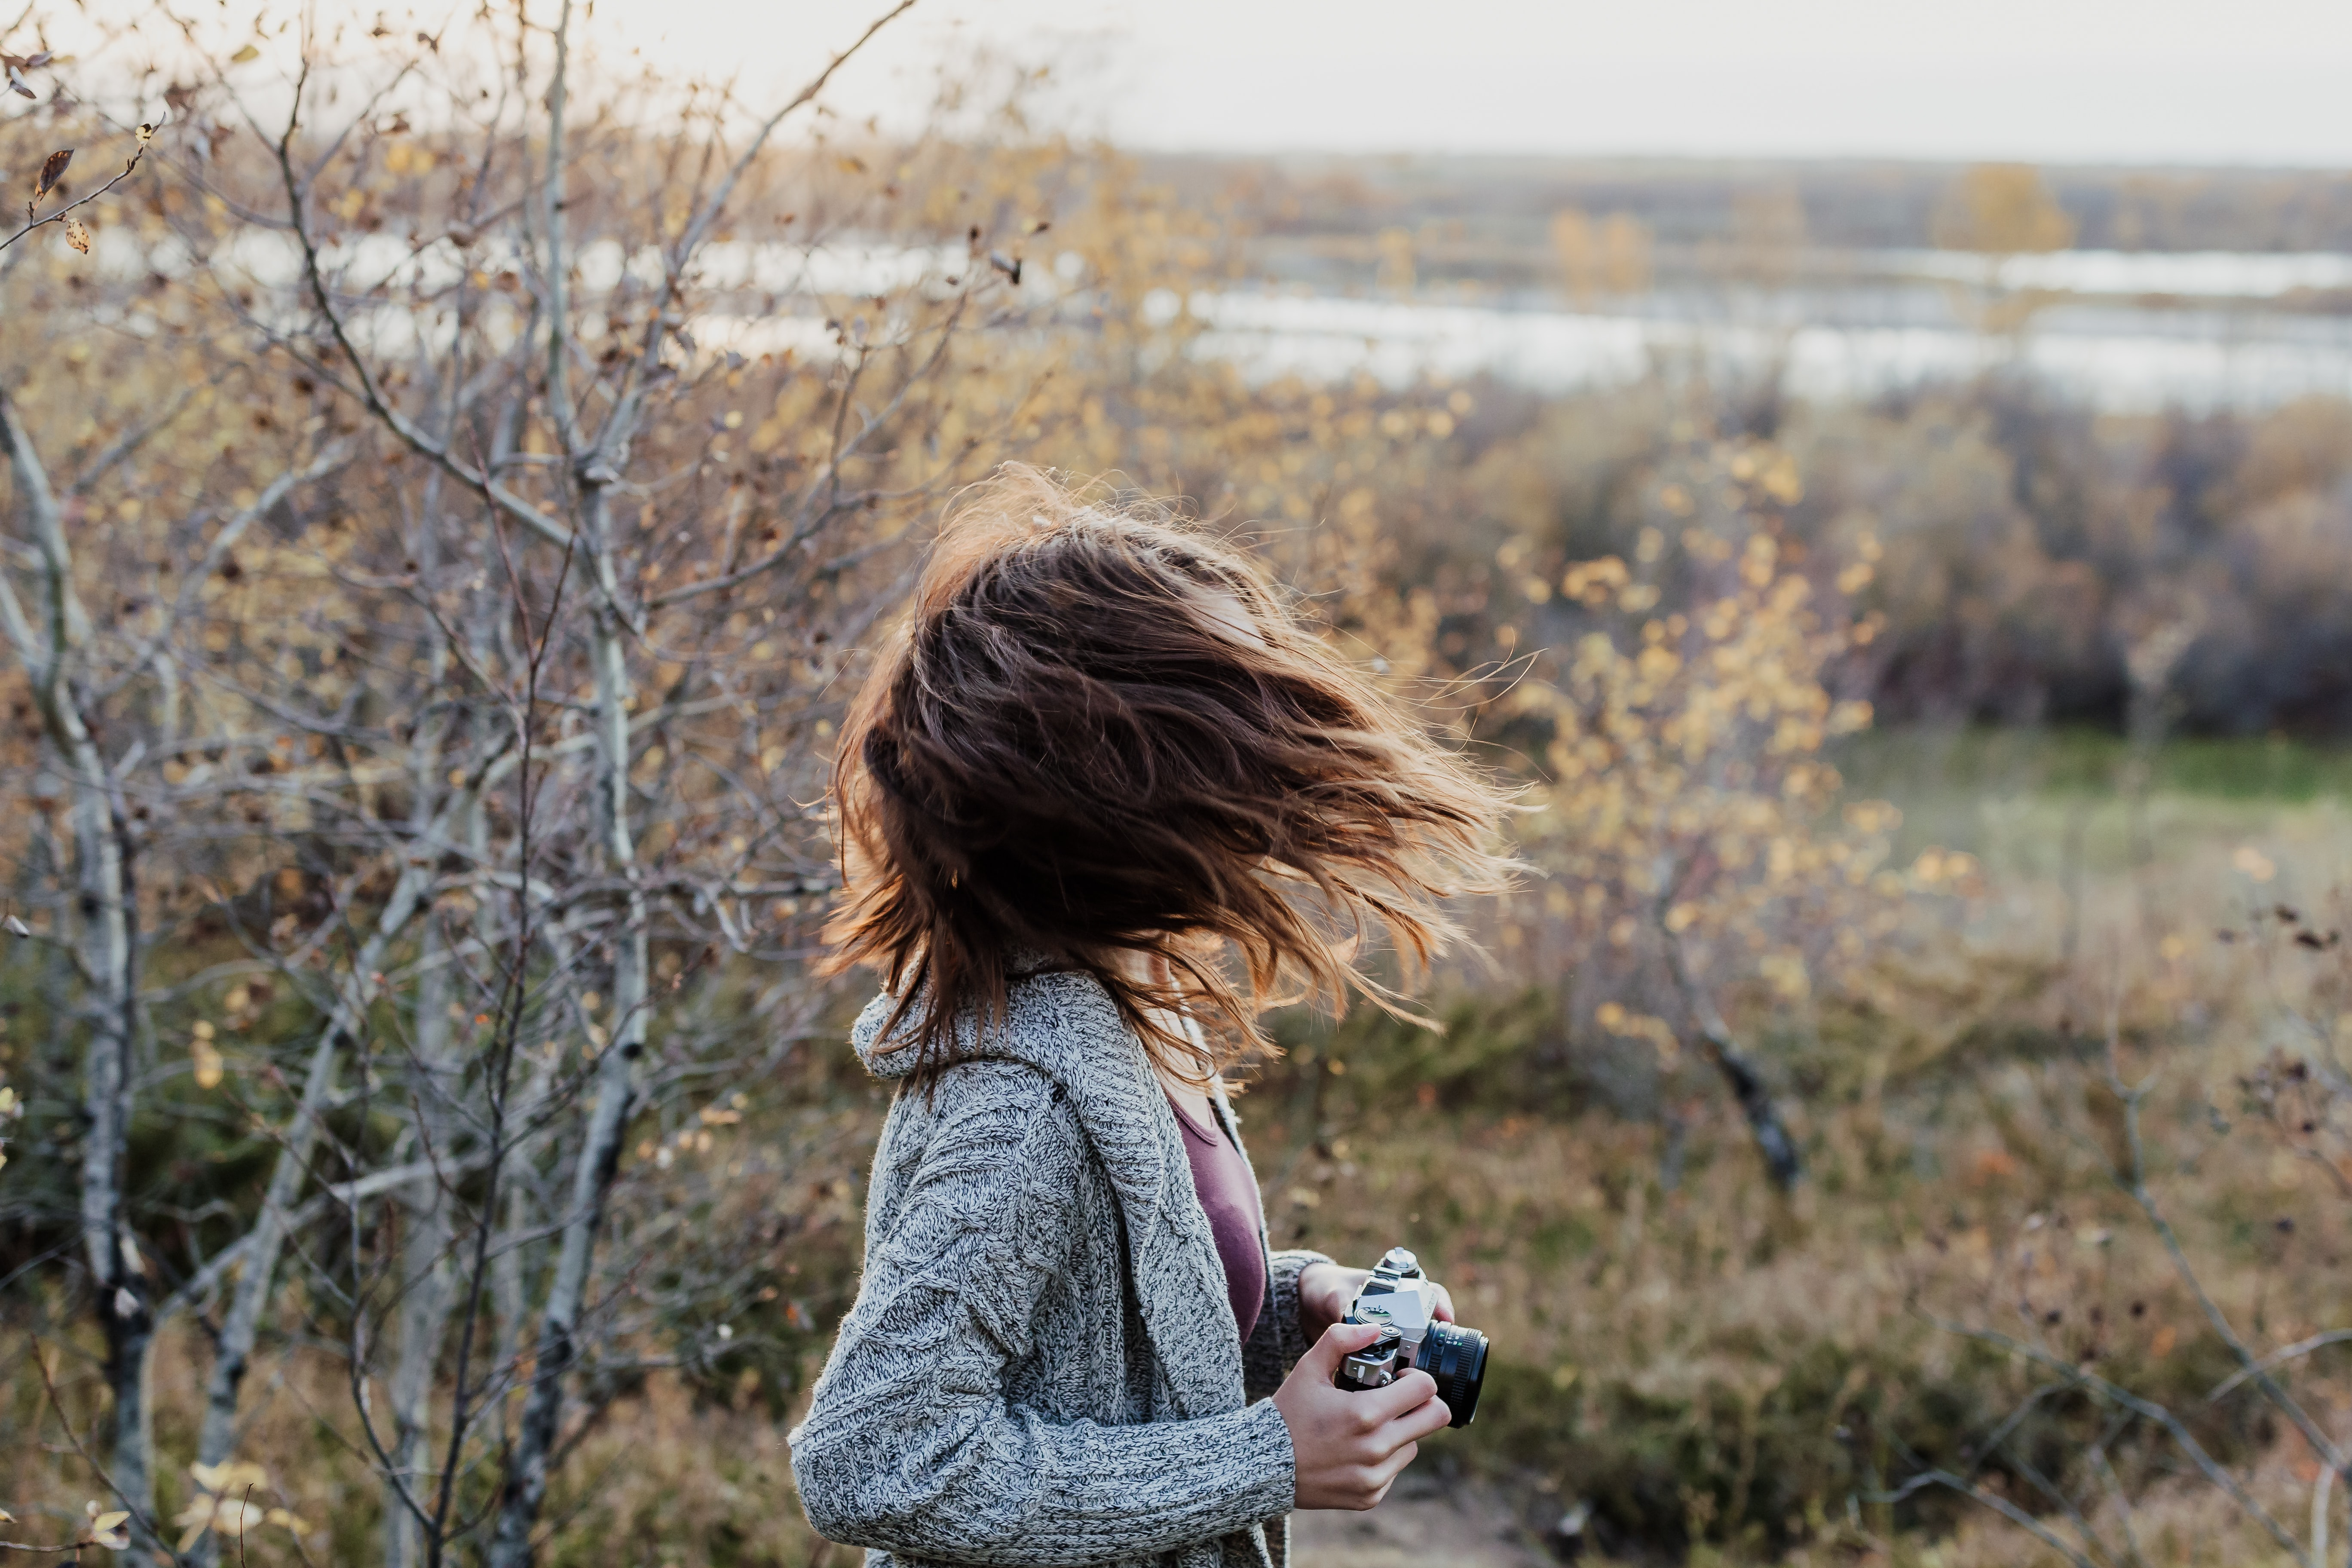 photo of woman waving her hair while holding camera